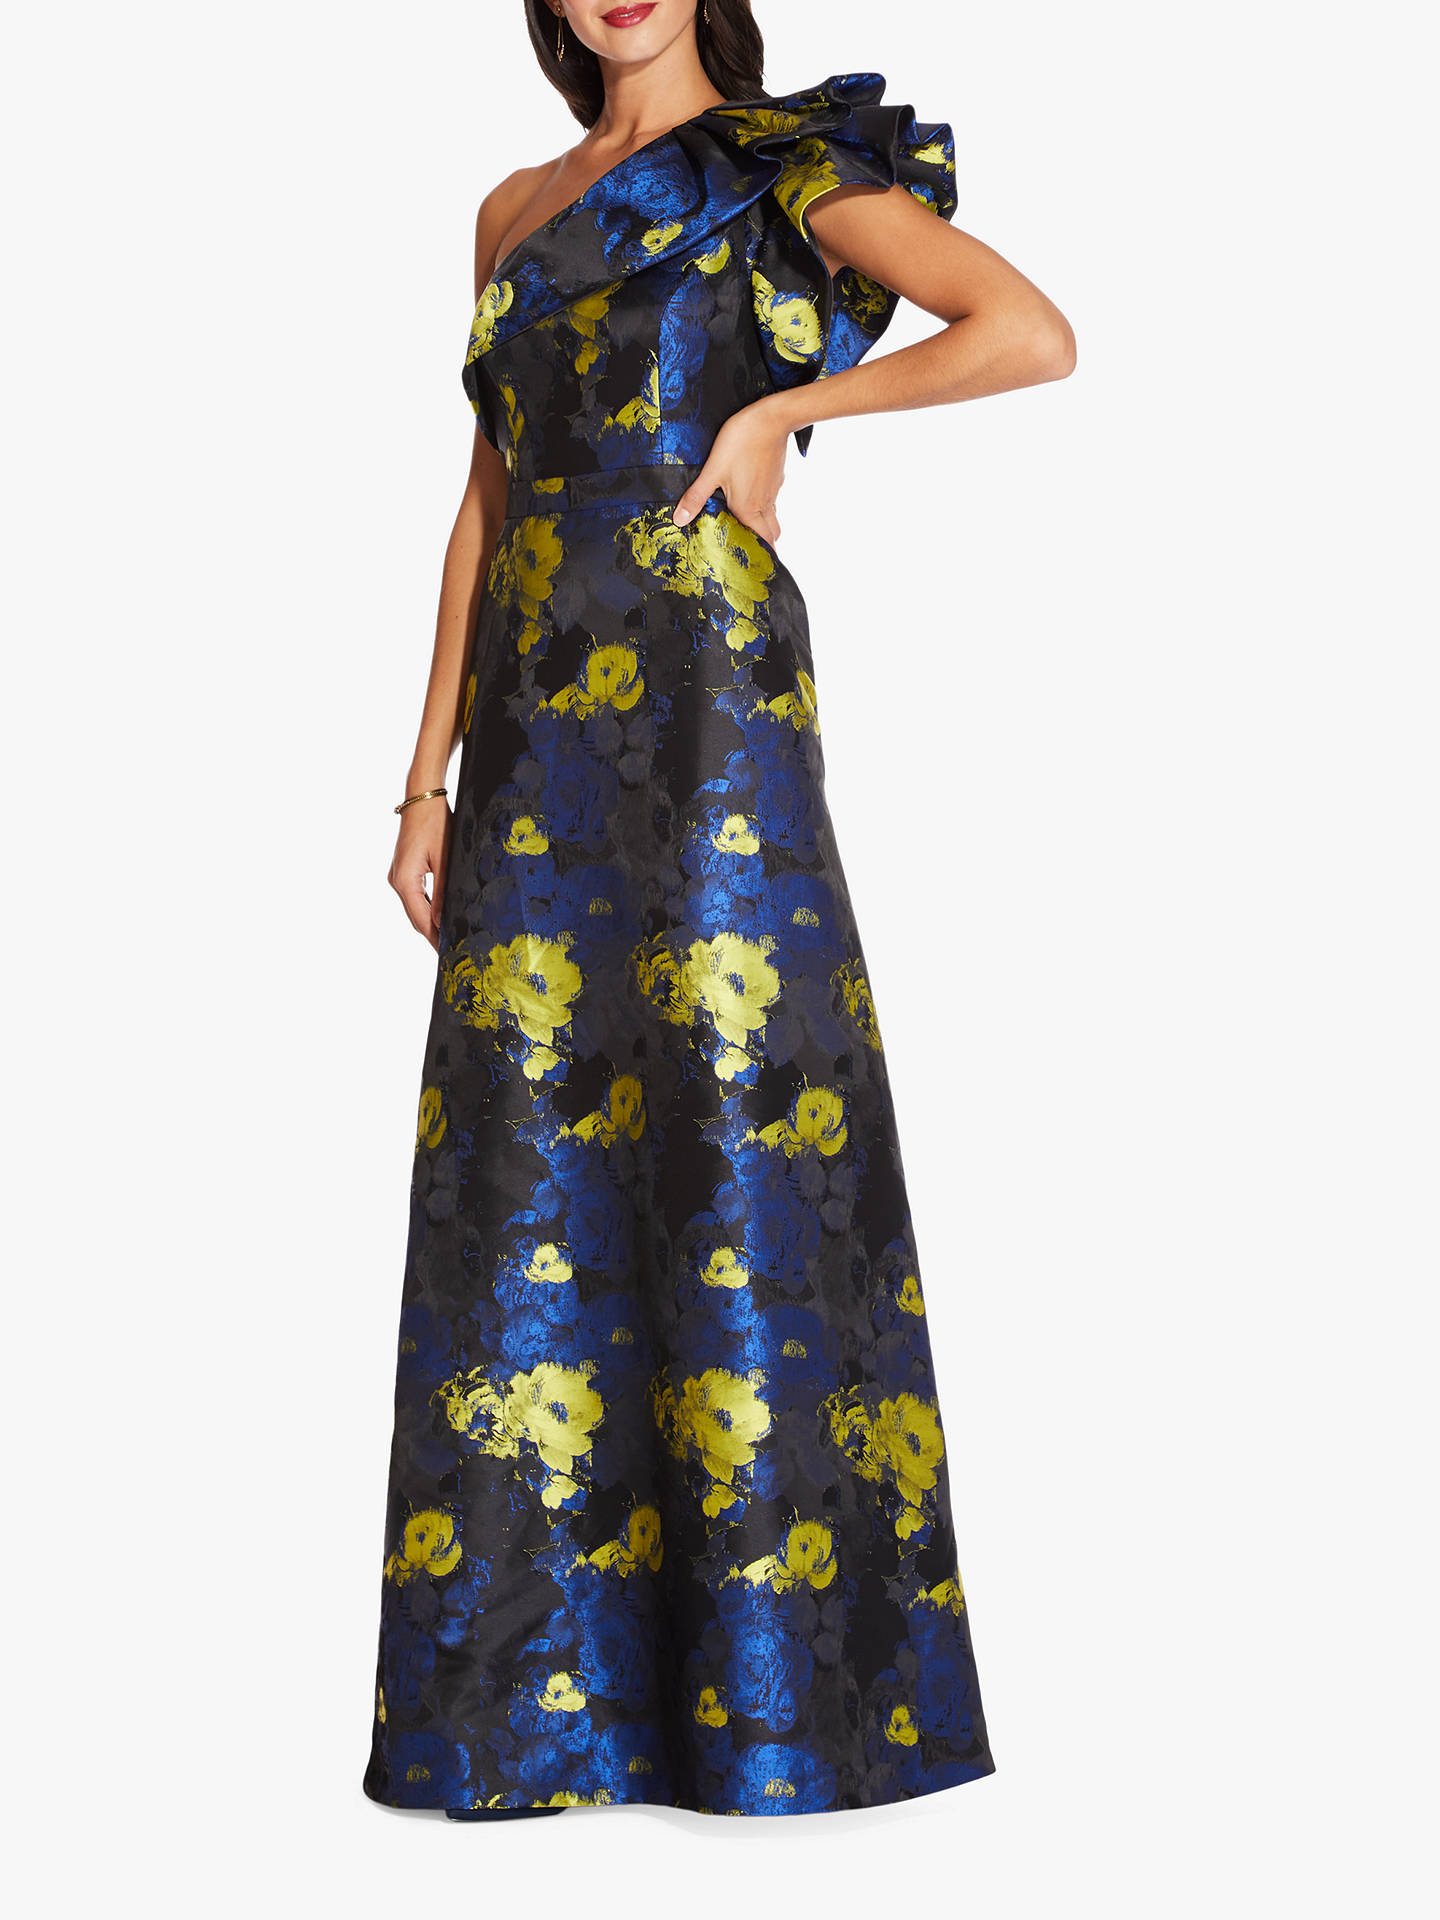 885423a96e7 Adrianna Papell Long Floral Jacquard Dress